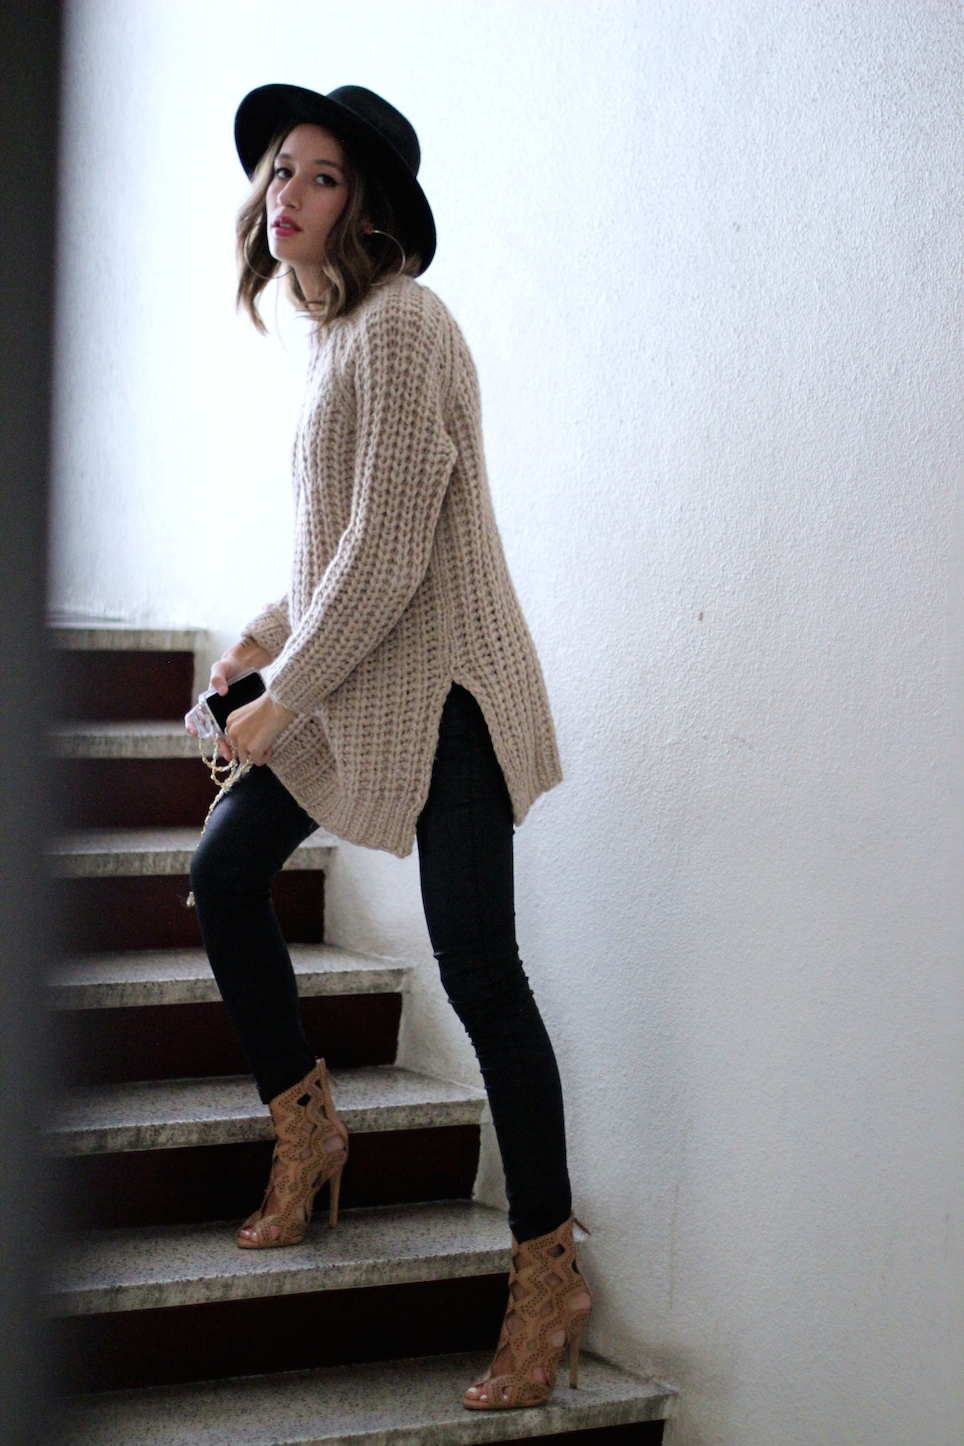 Alexandra Guerain in her heavy knit by Zara